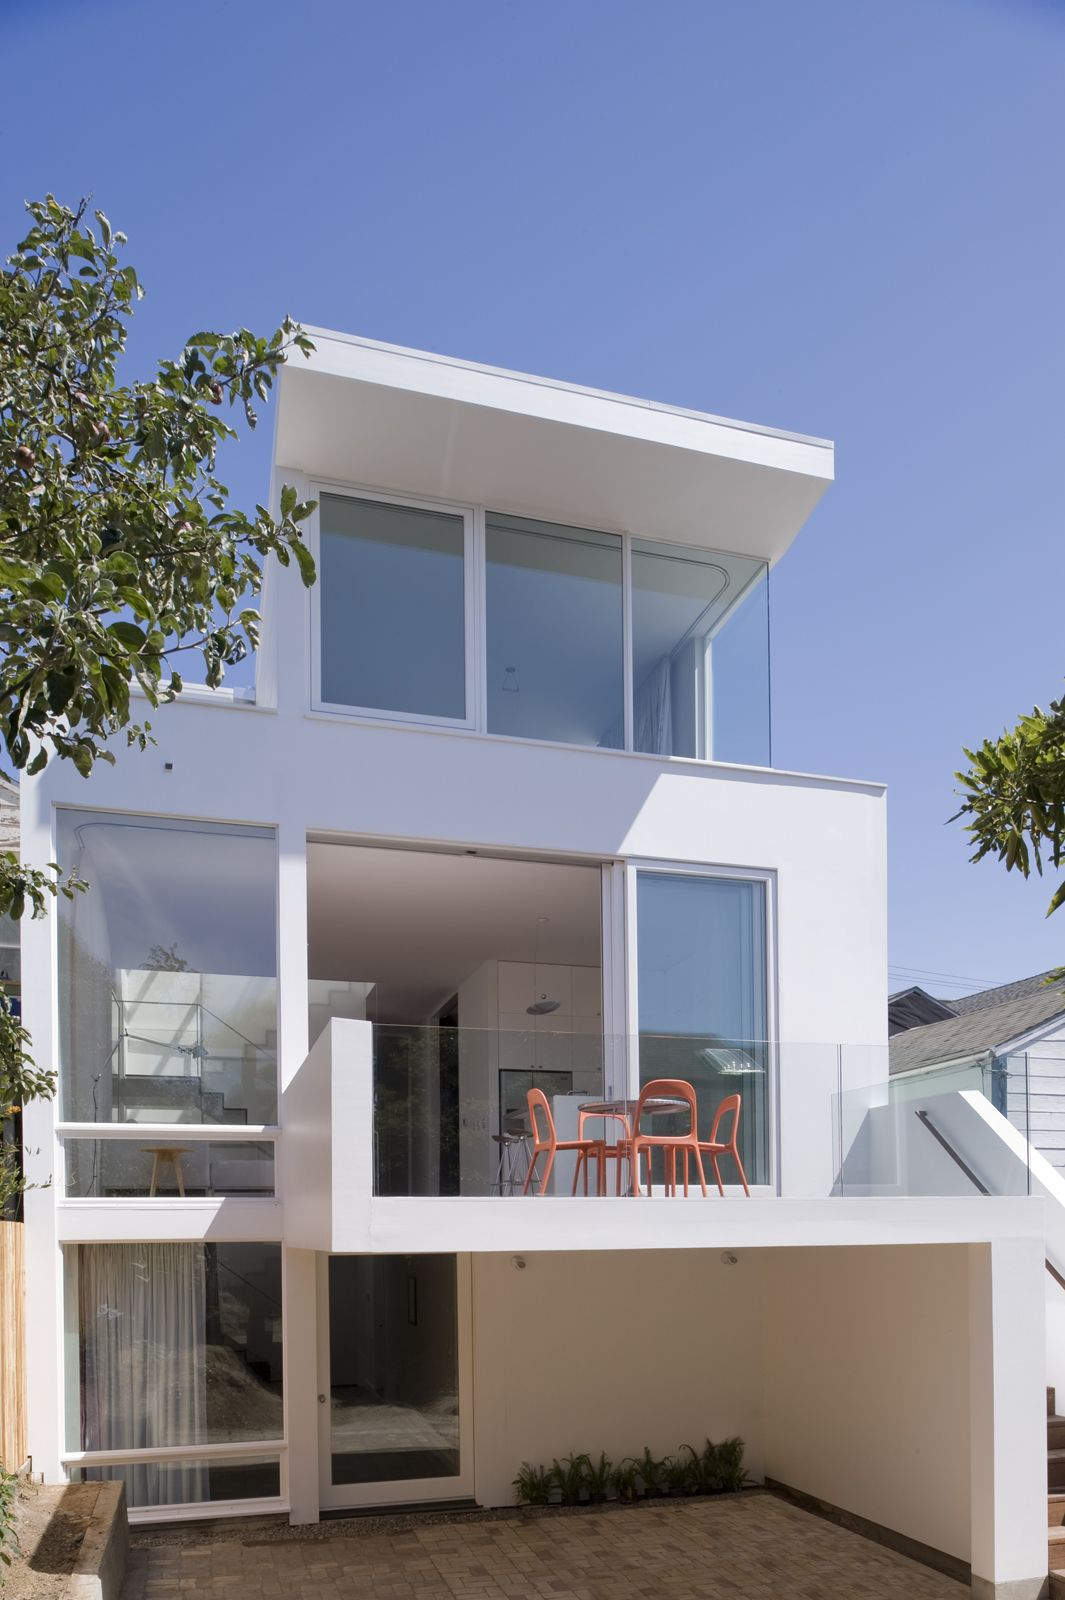 House box window design  a major renovation is the perfect opportunity to bring more light